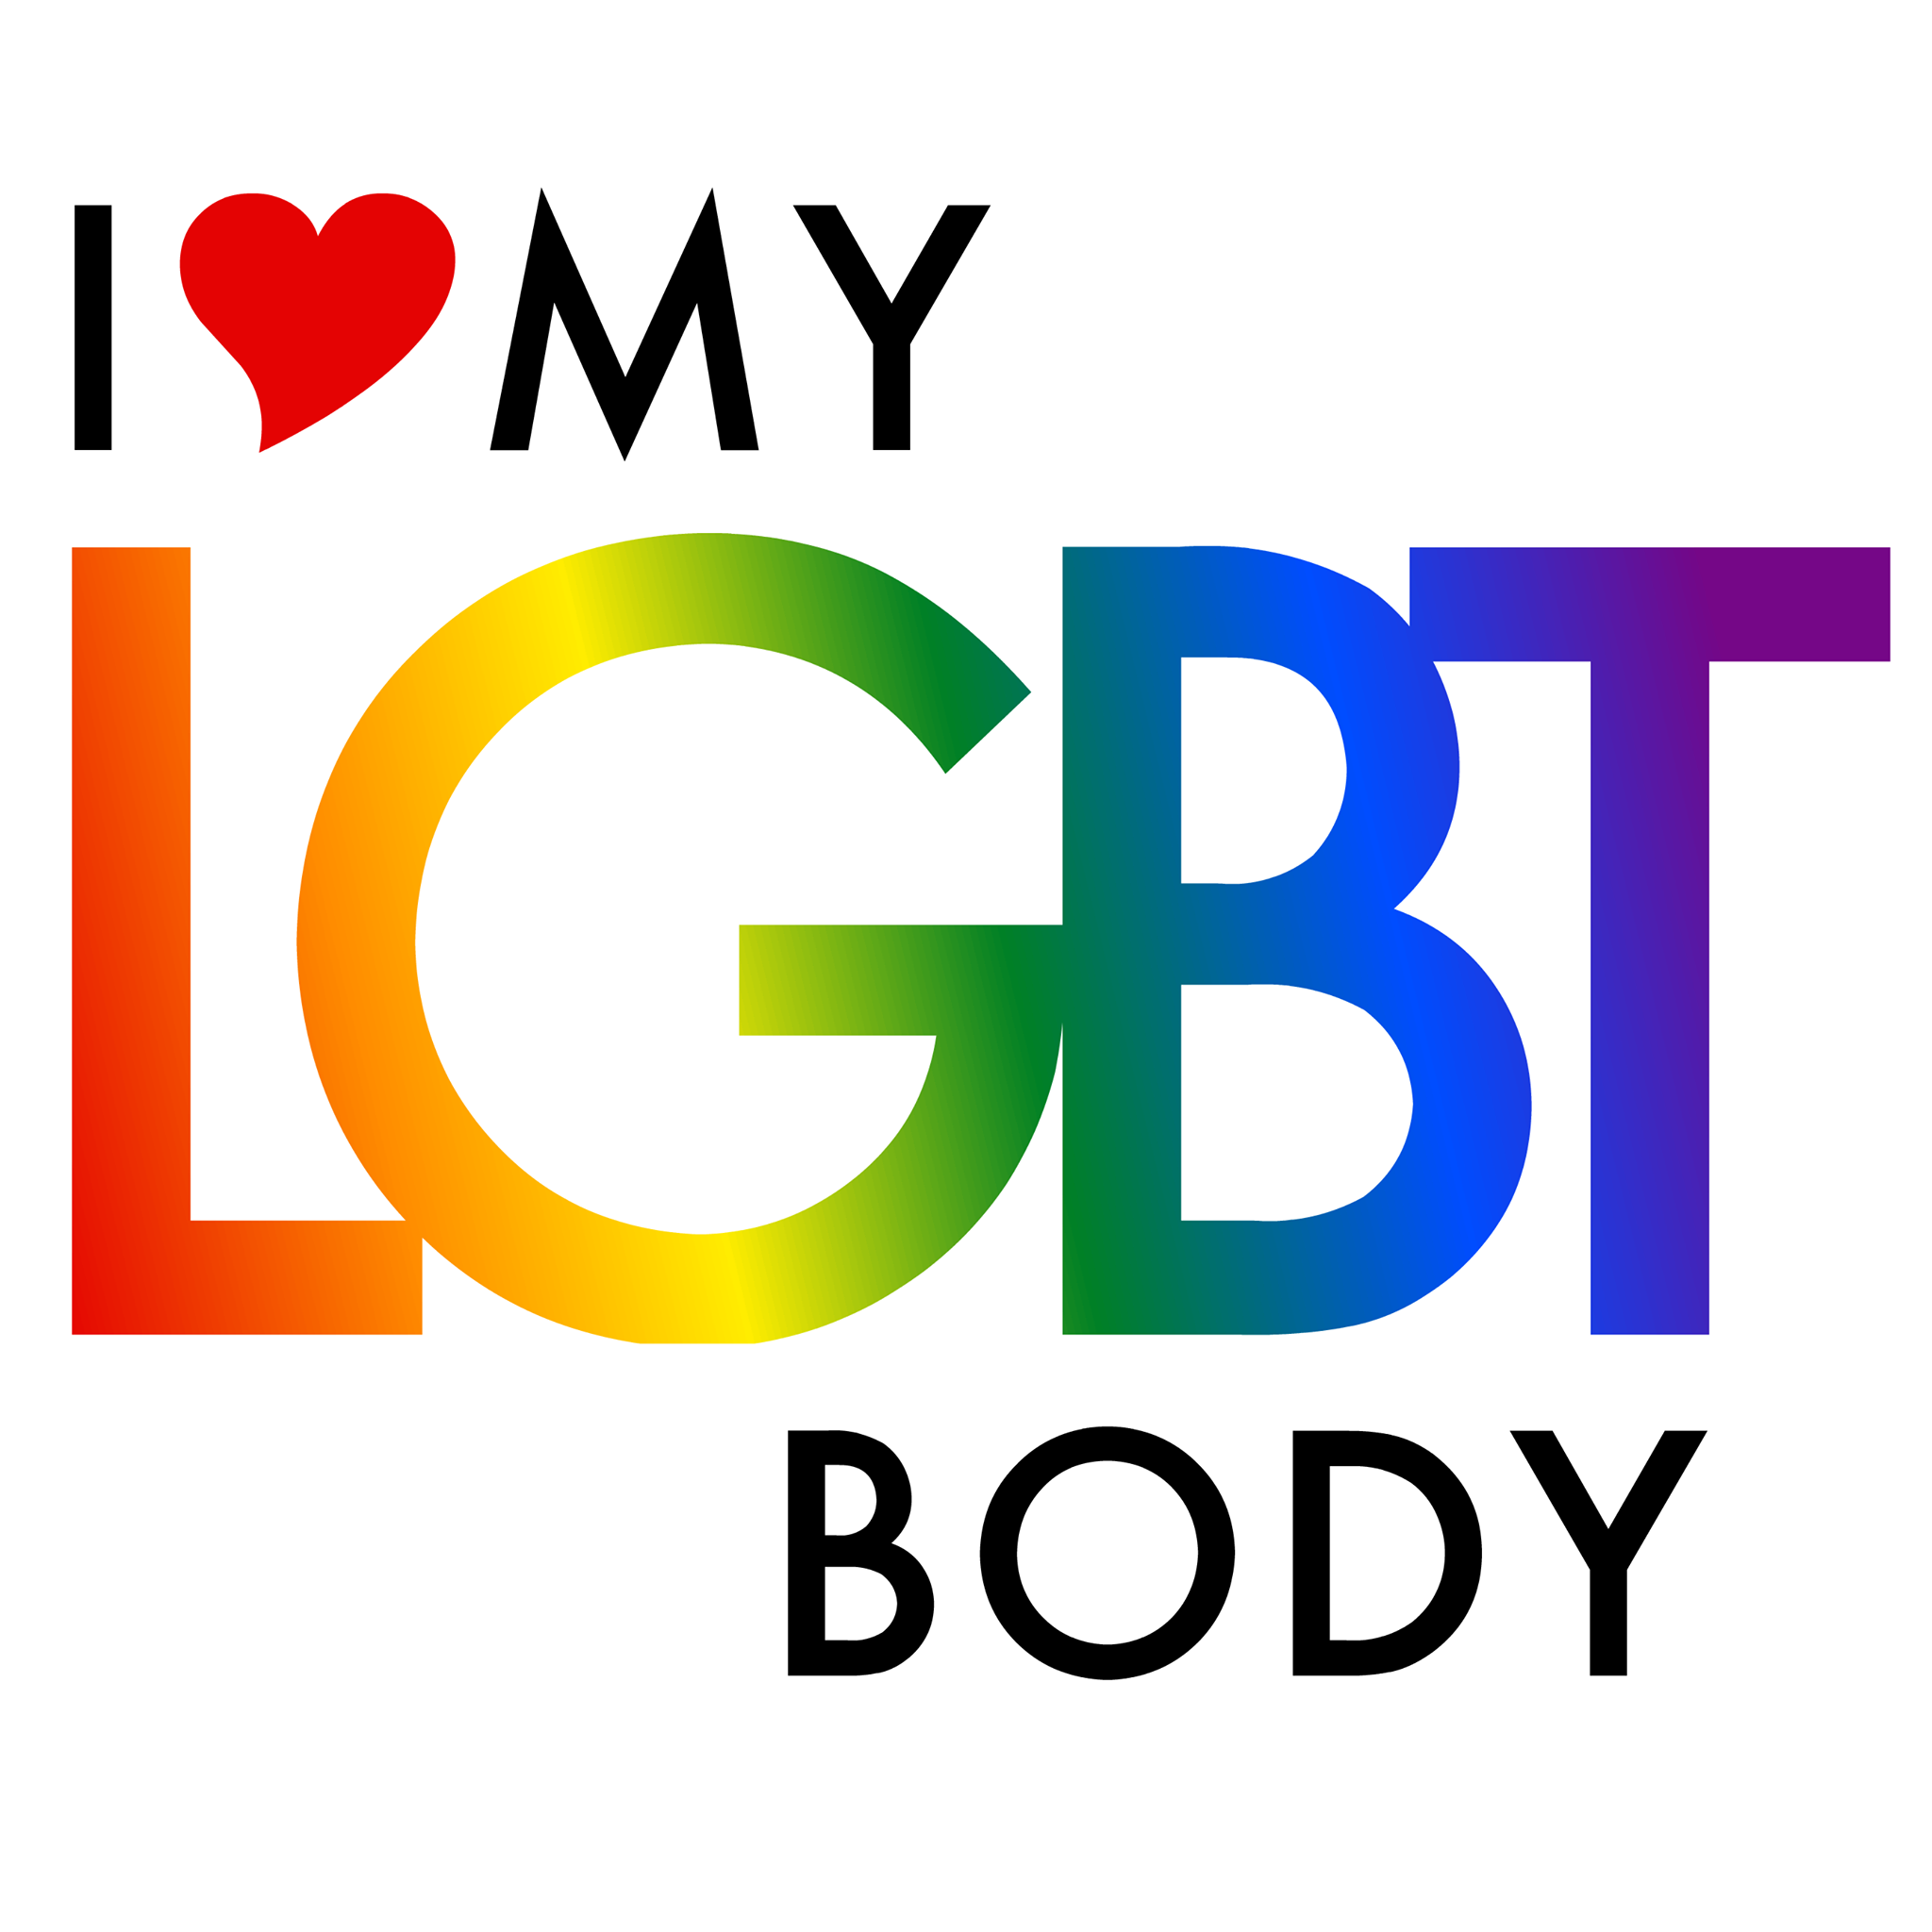 i love my LGBT body